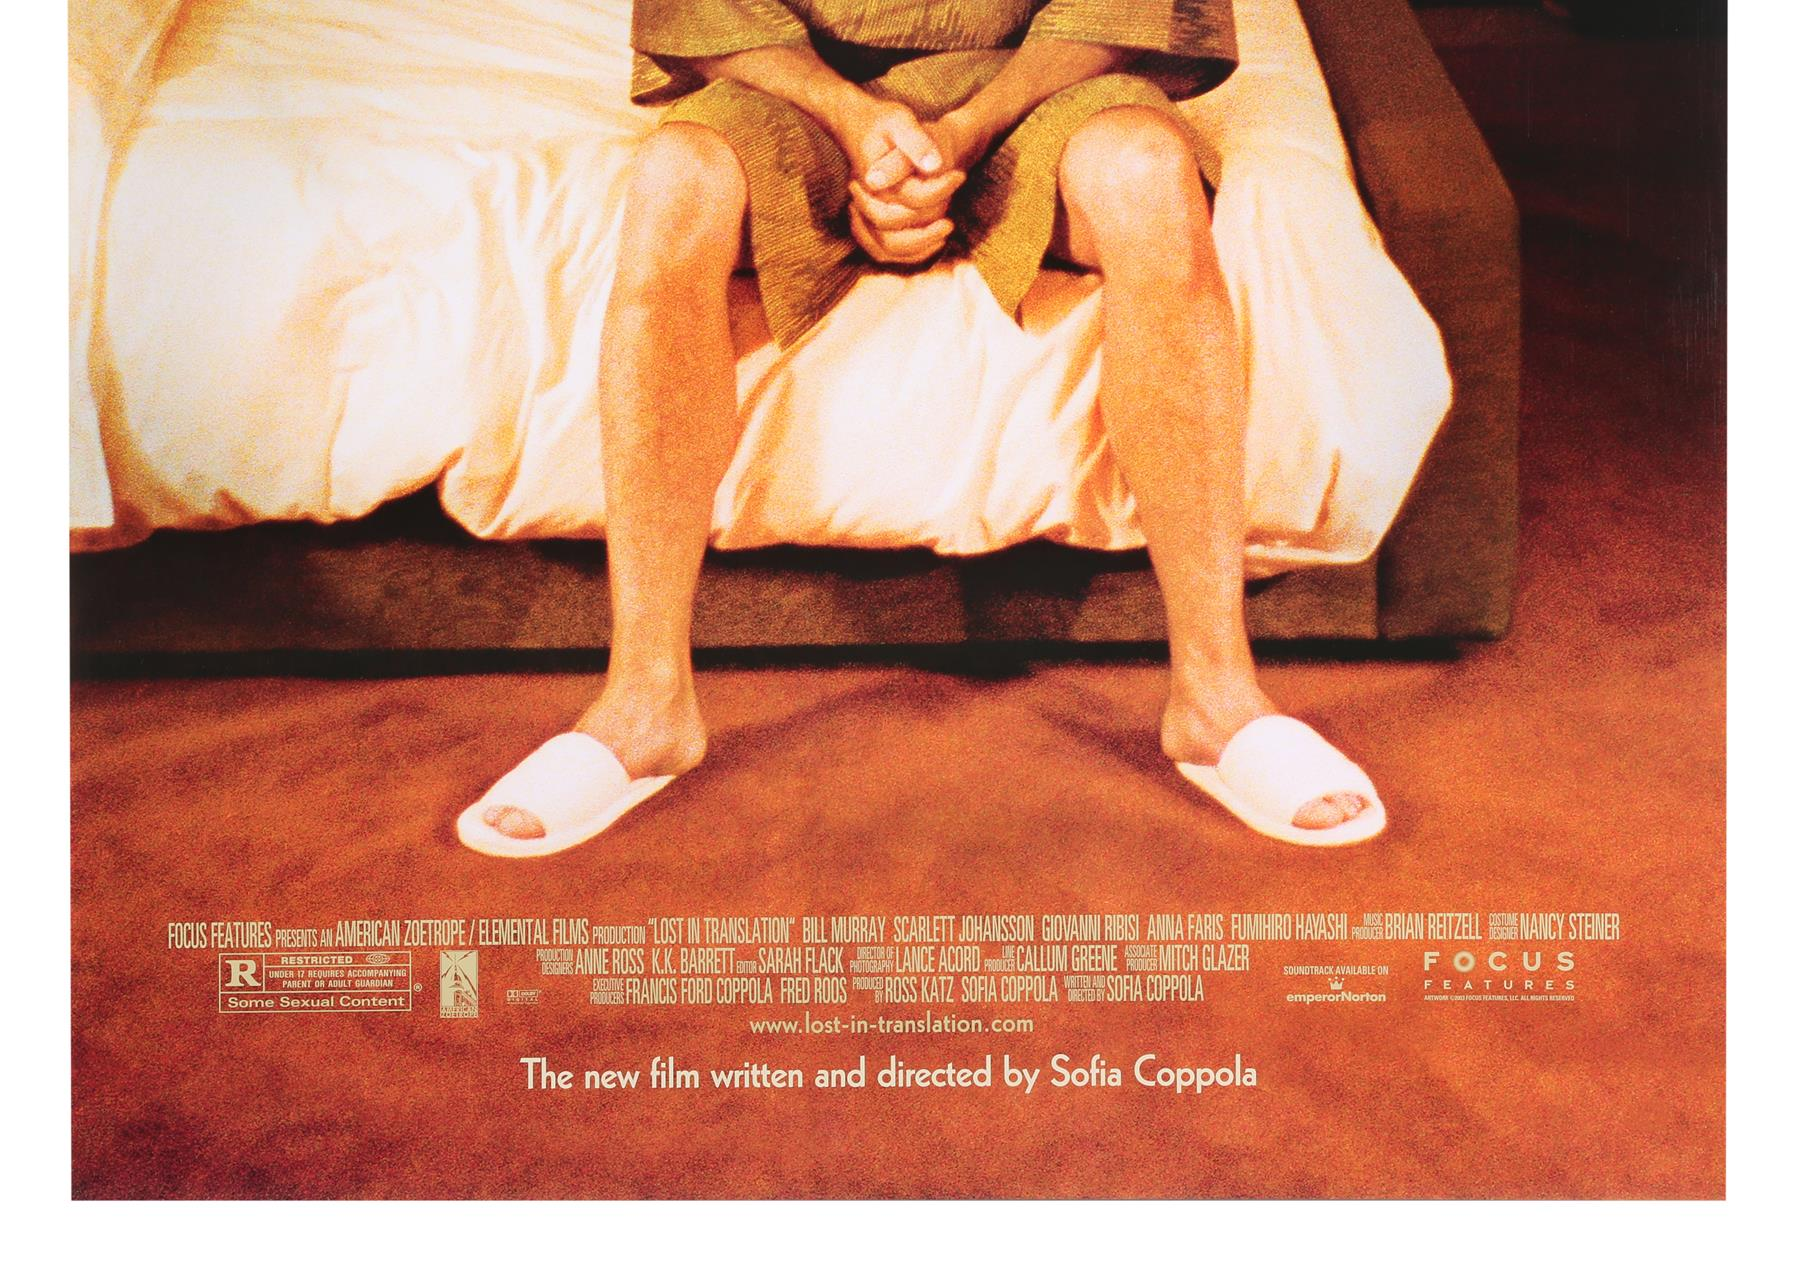 LOST IN TRANSLATION (2003) - Two US One-Sheets (Style A and B), 2003 - Image 7 of 7